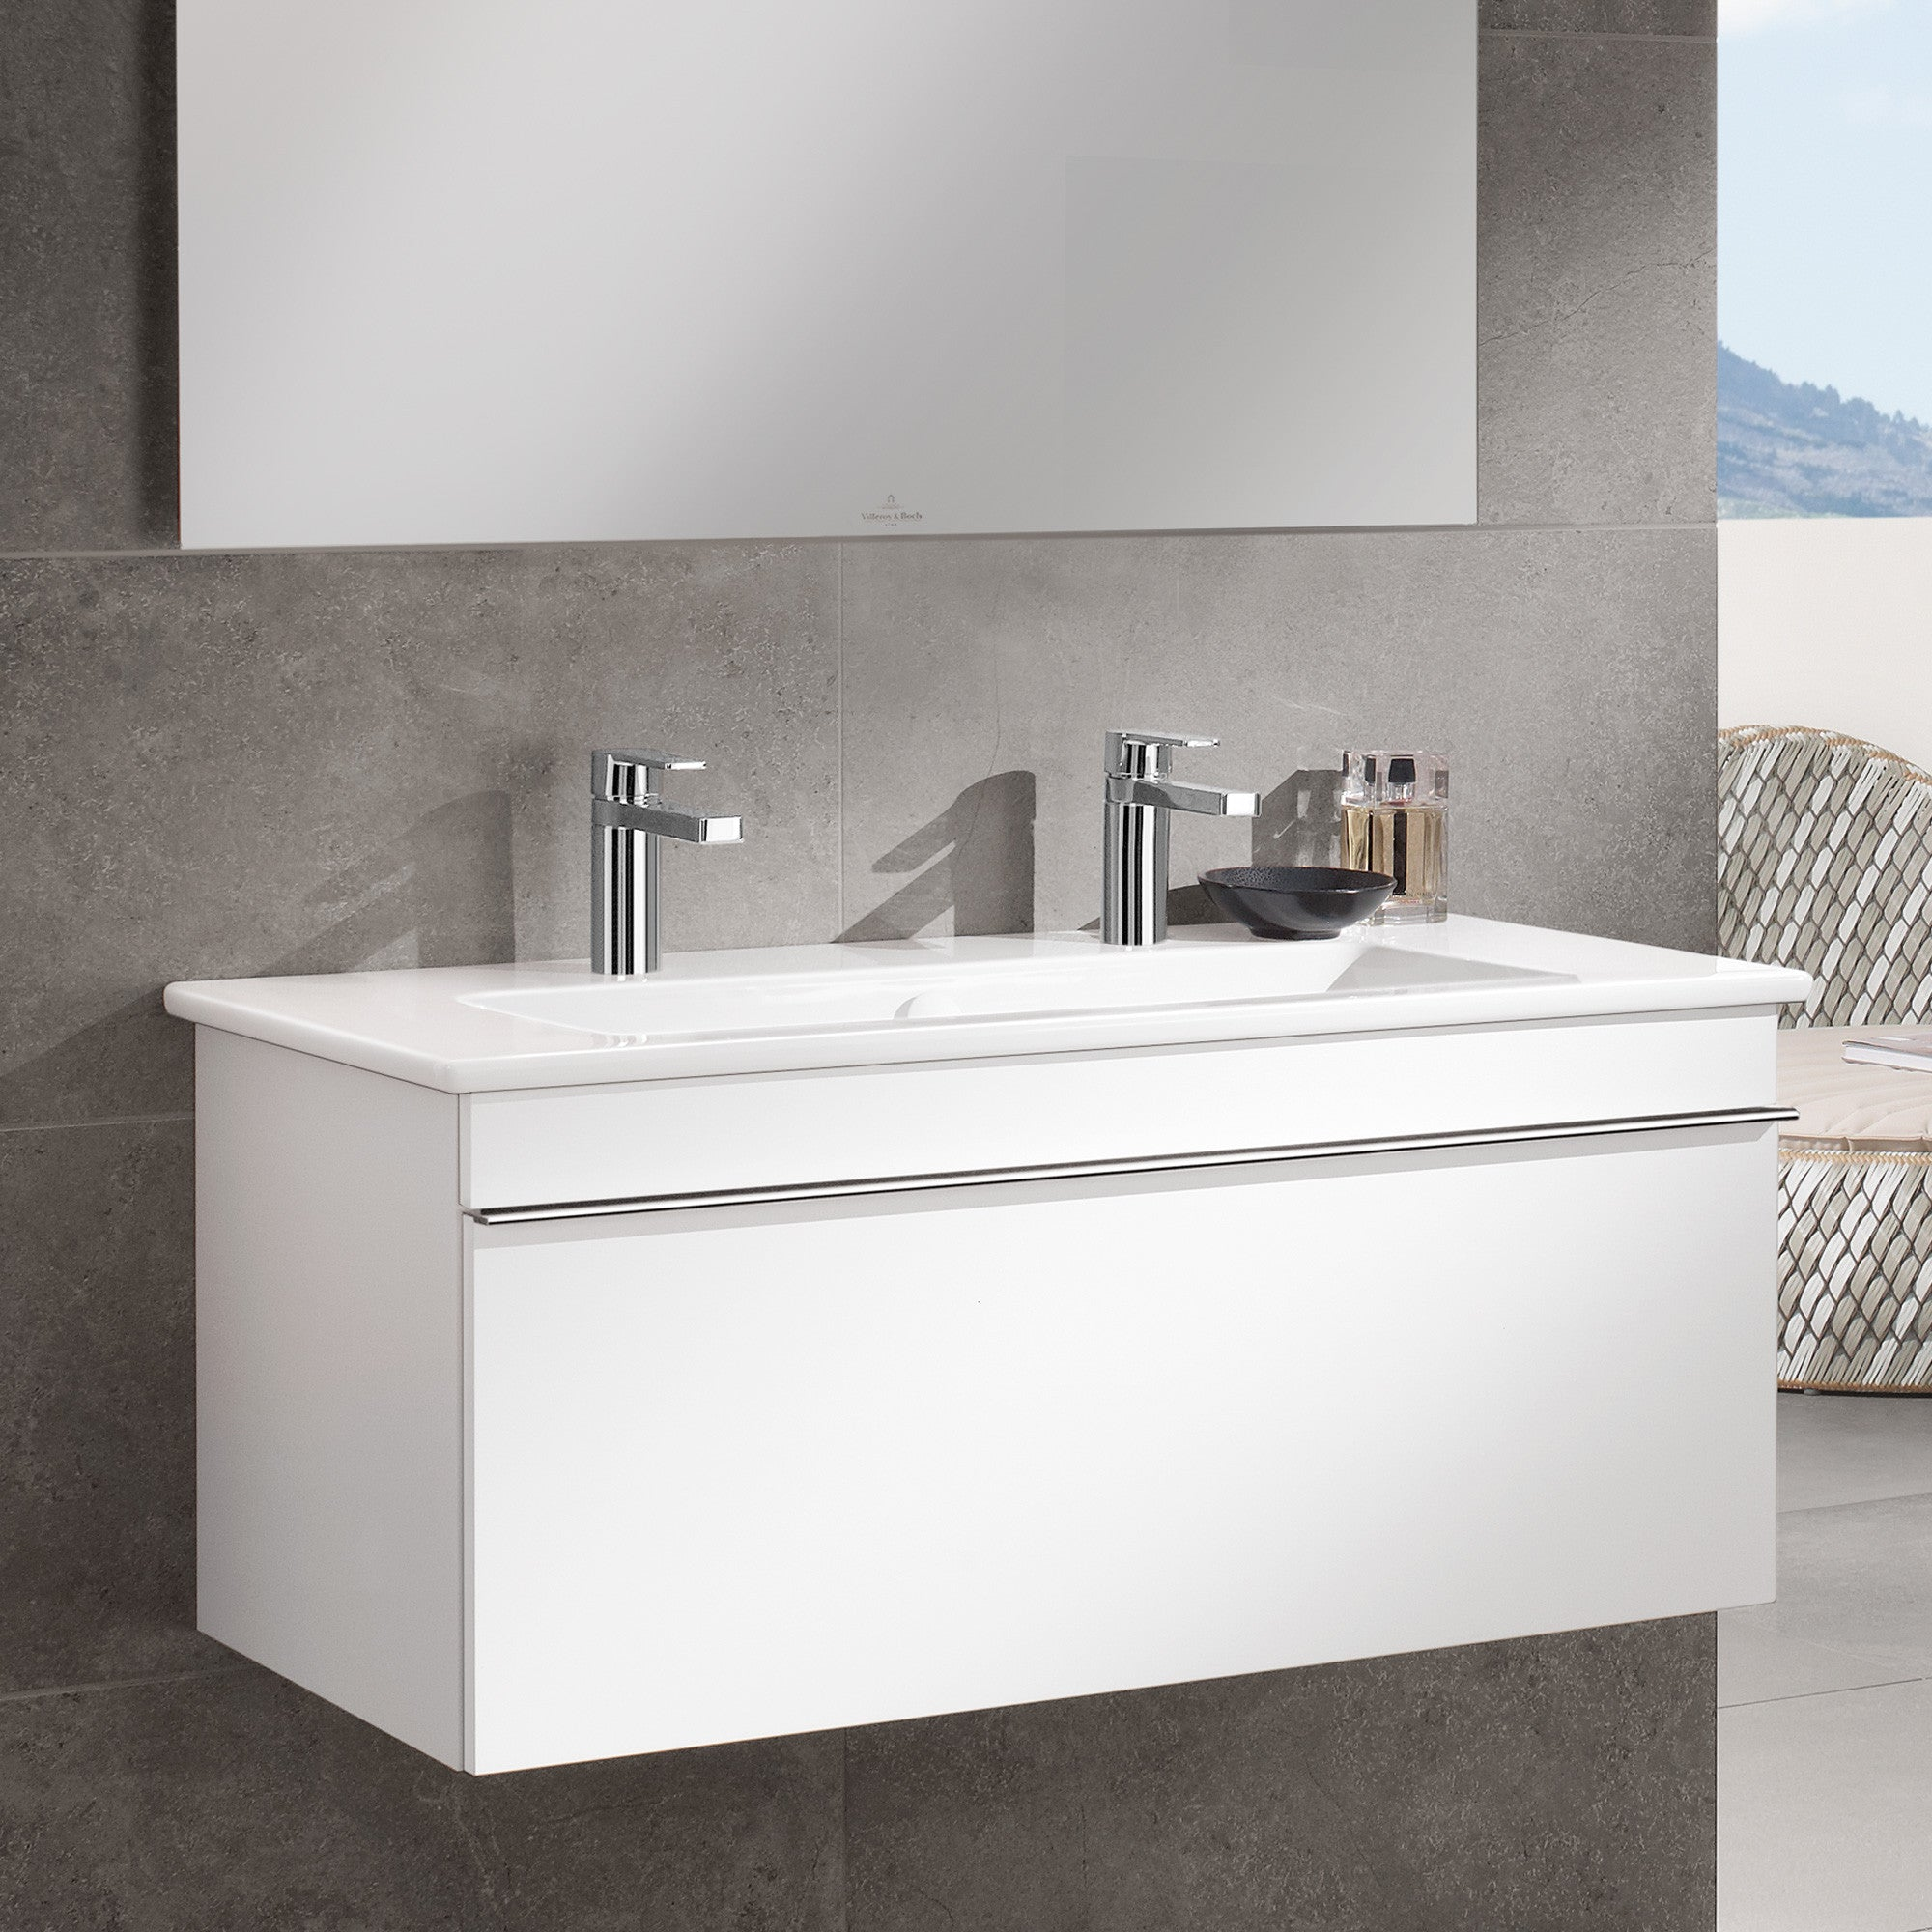 wall hung vanity unit basins tagged venticello. Black Bedroom Furniture Sets. Home Design Ideas